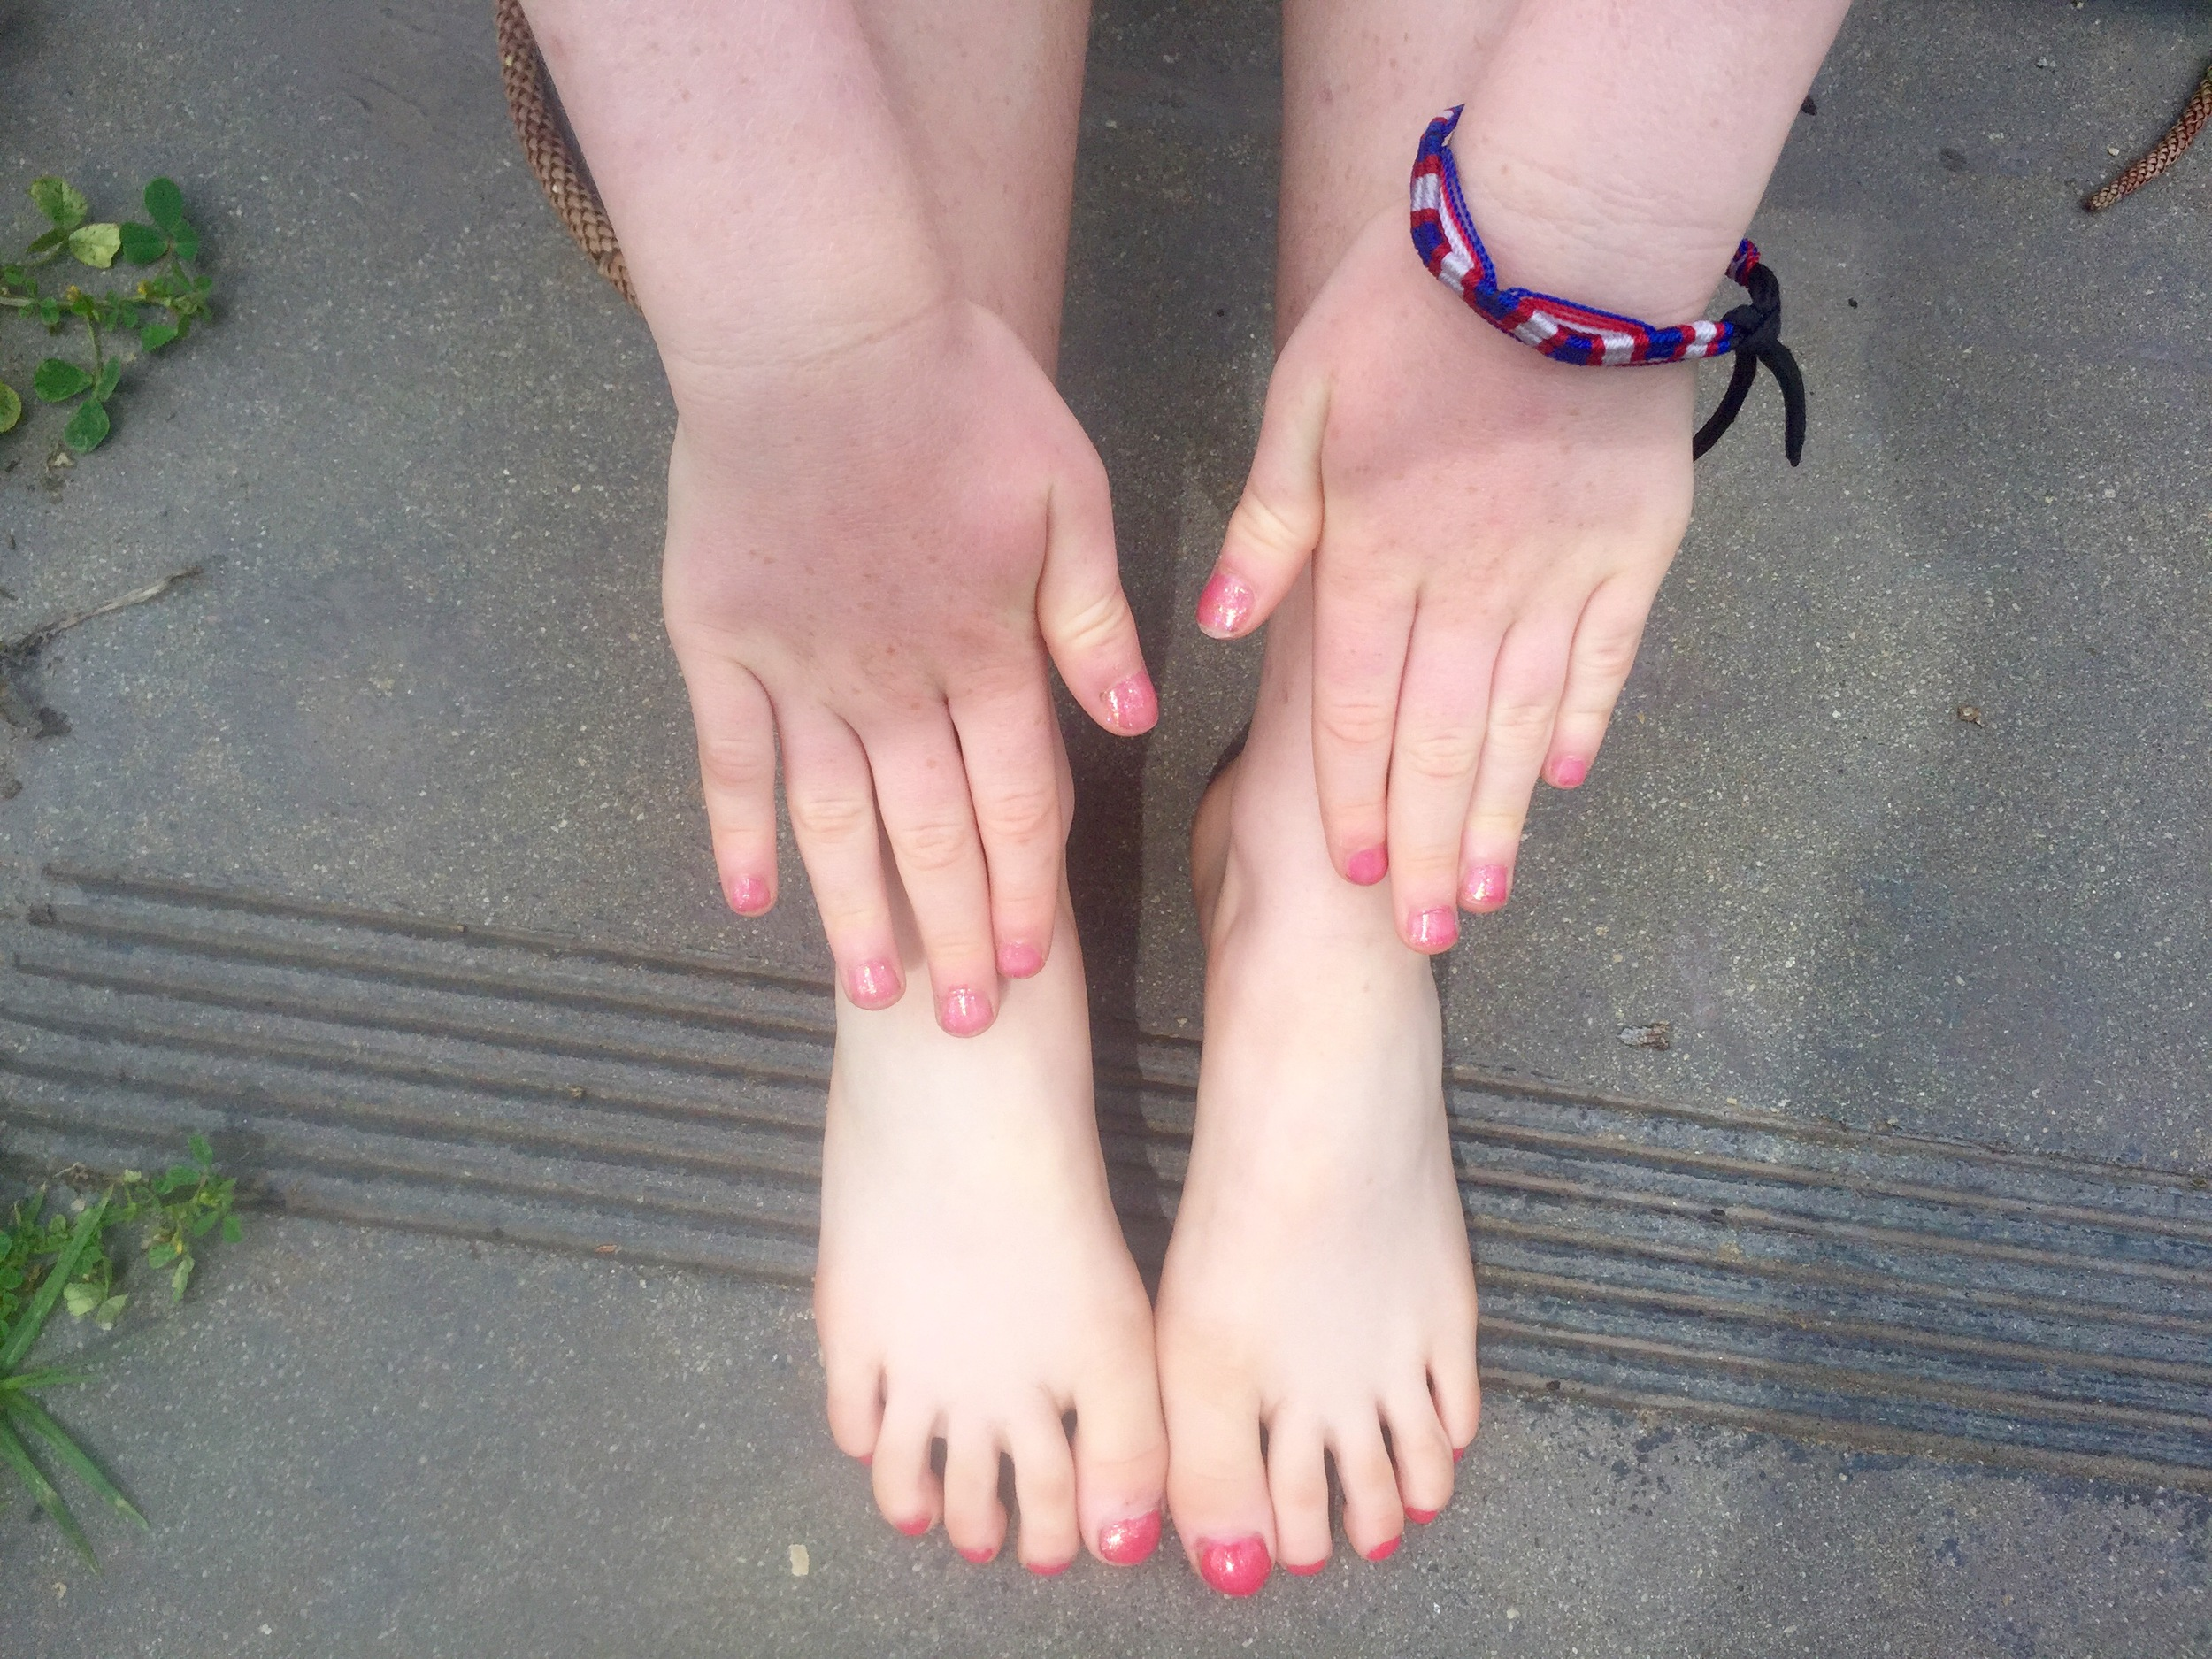 New fingers and toes!!